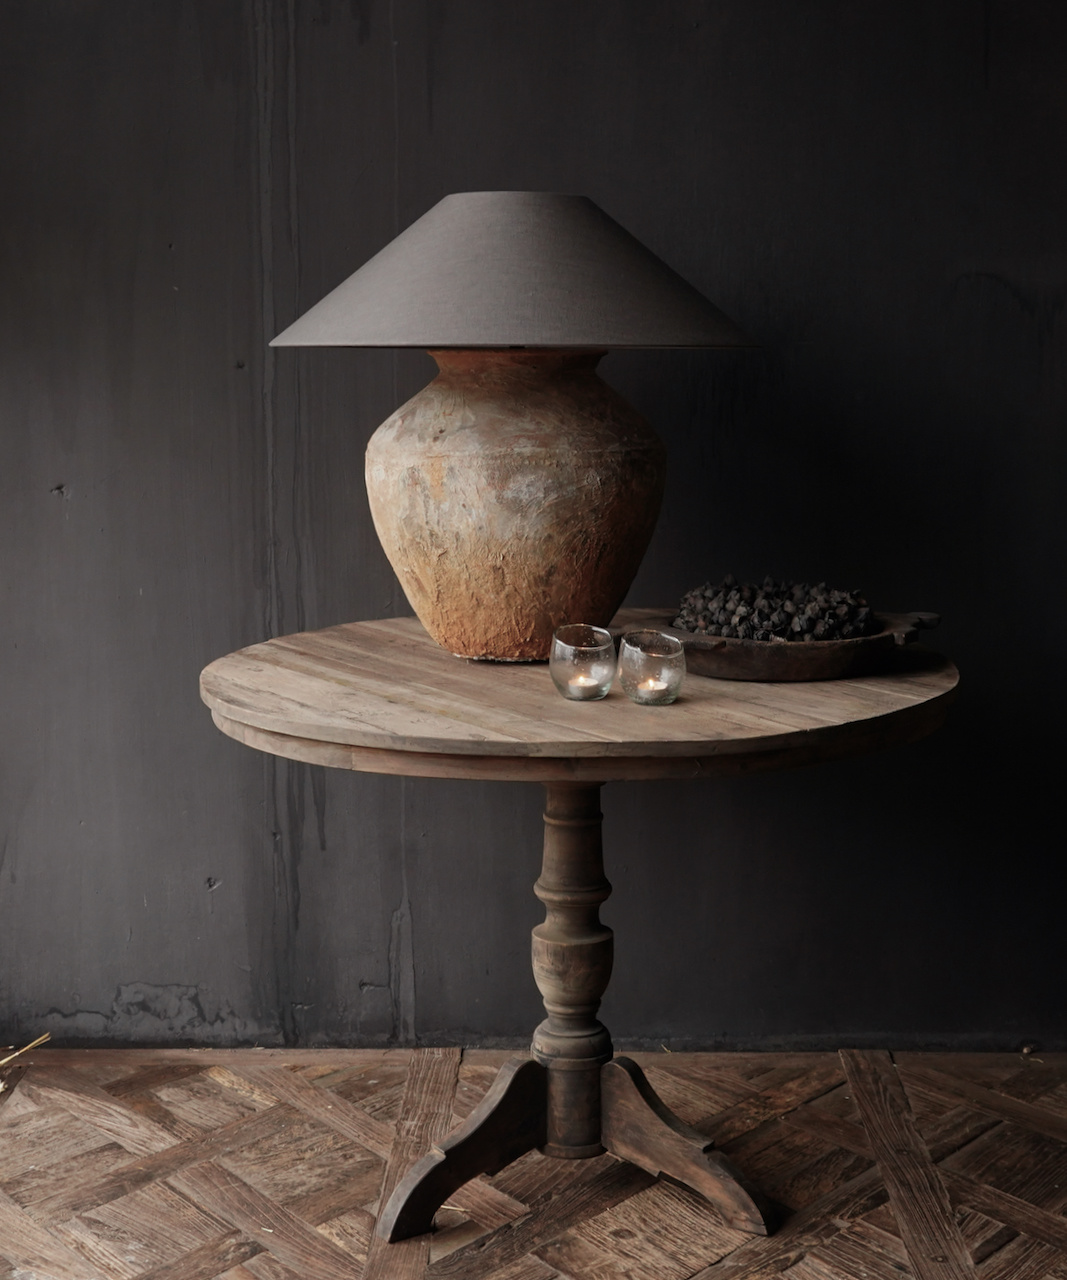 Cool round table made of old used wood - Copy-1